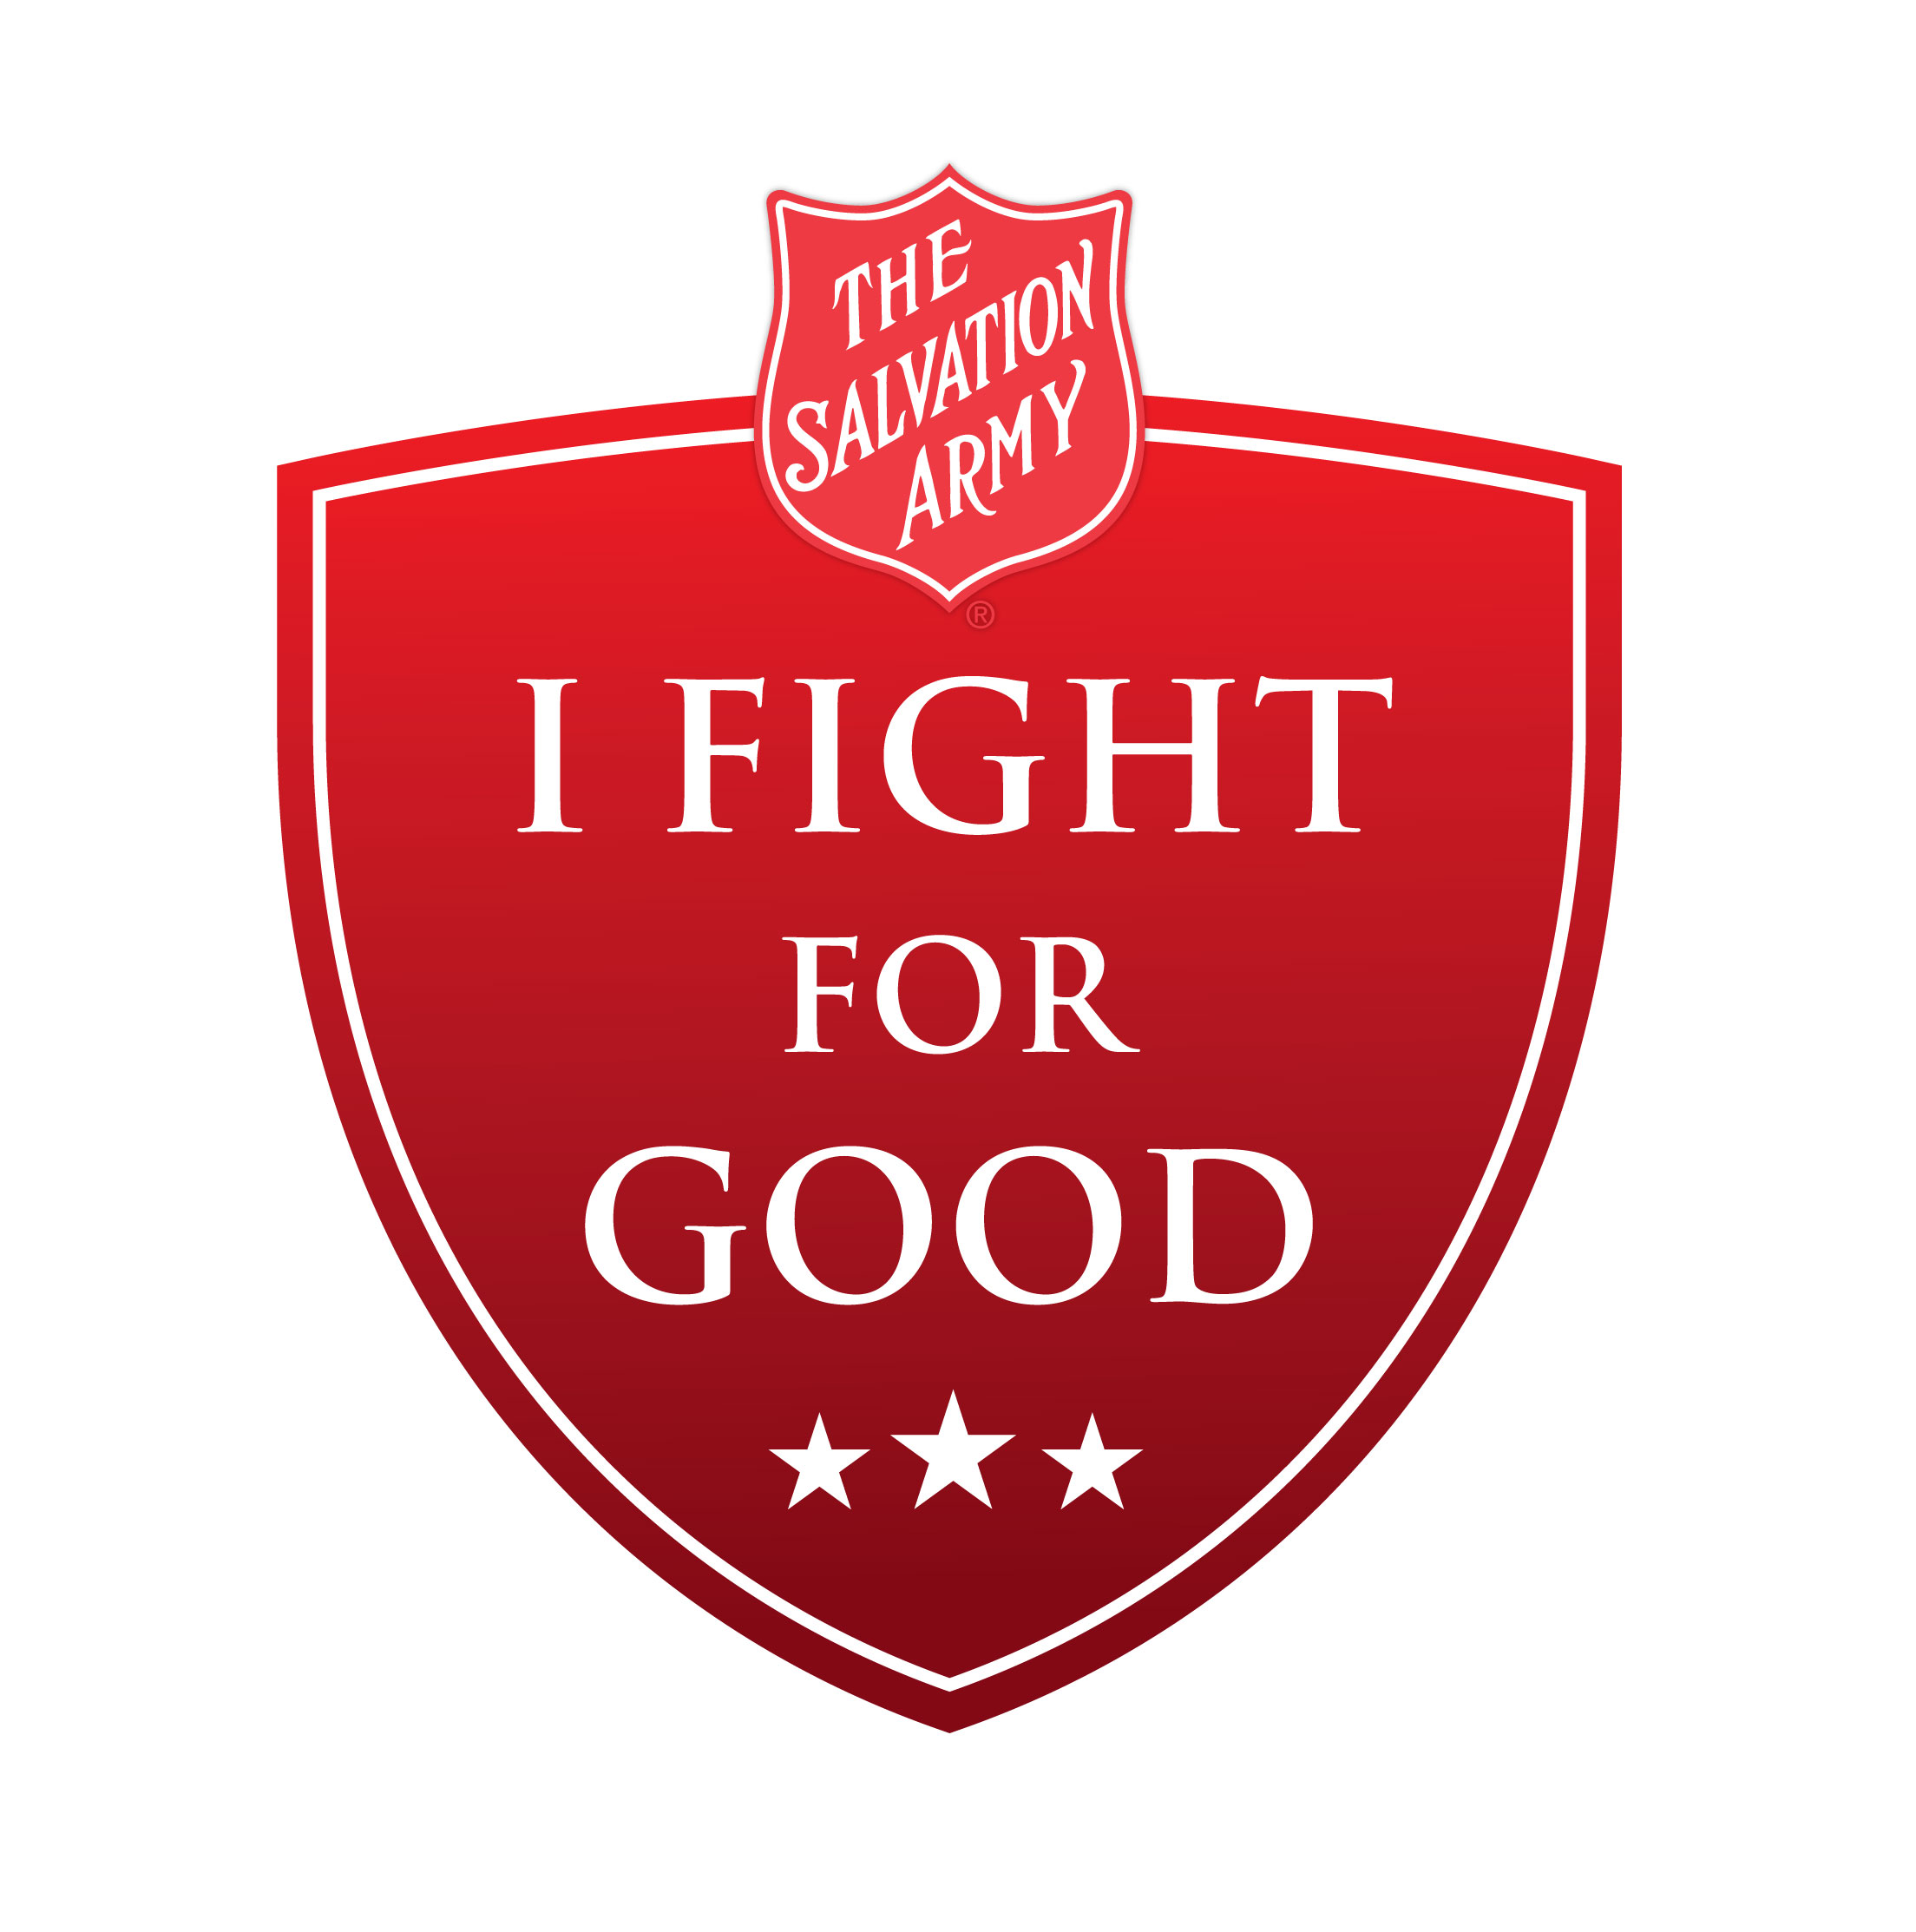 Genesee county red kettle join the fight for good by getting involved in what many consider the actual start of the christmas season the salvation armys red kettle campaign biocorpaavc Choice Image